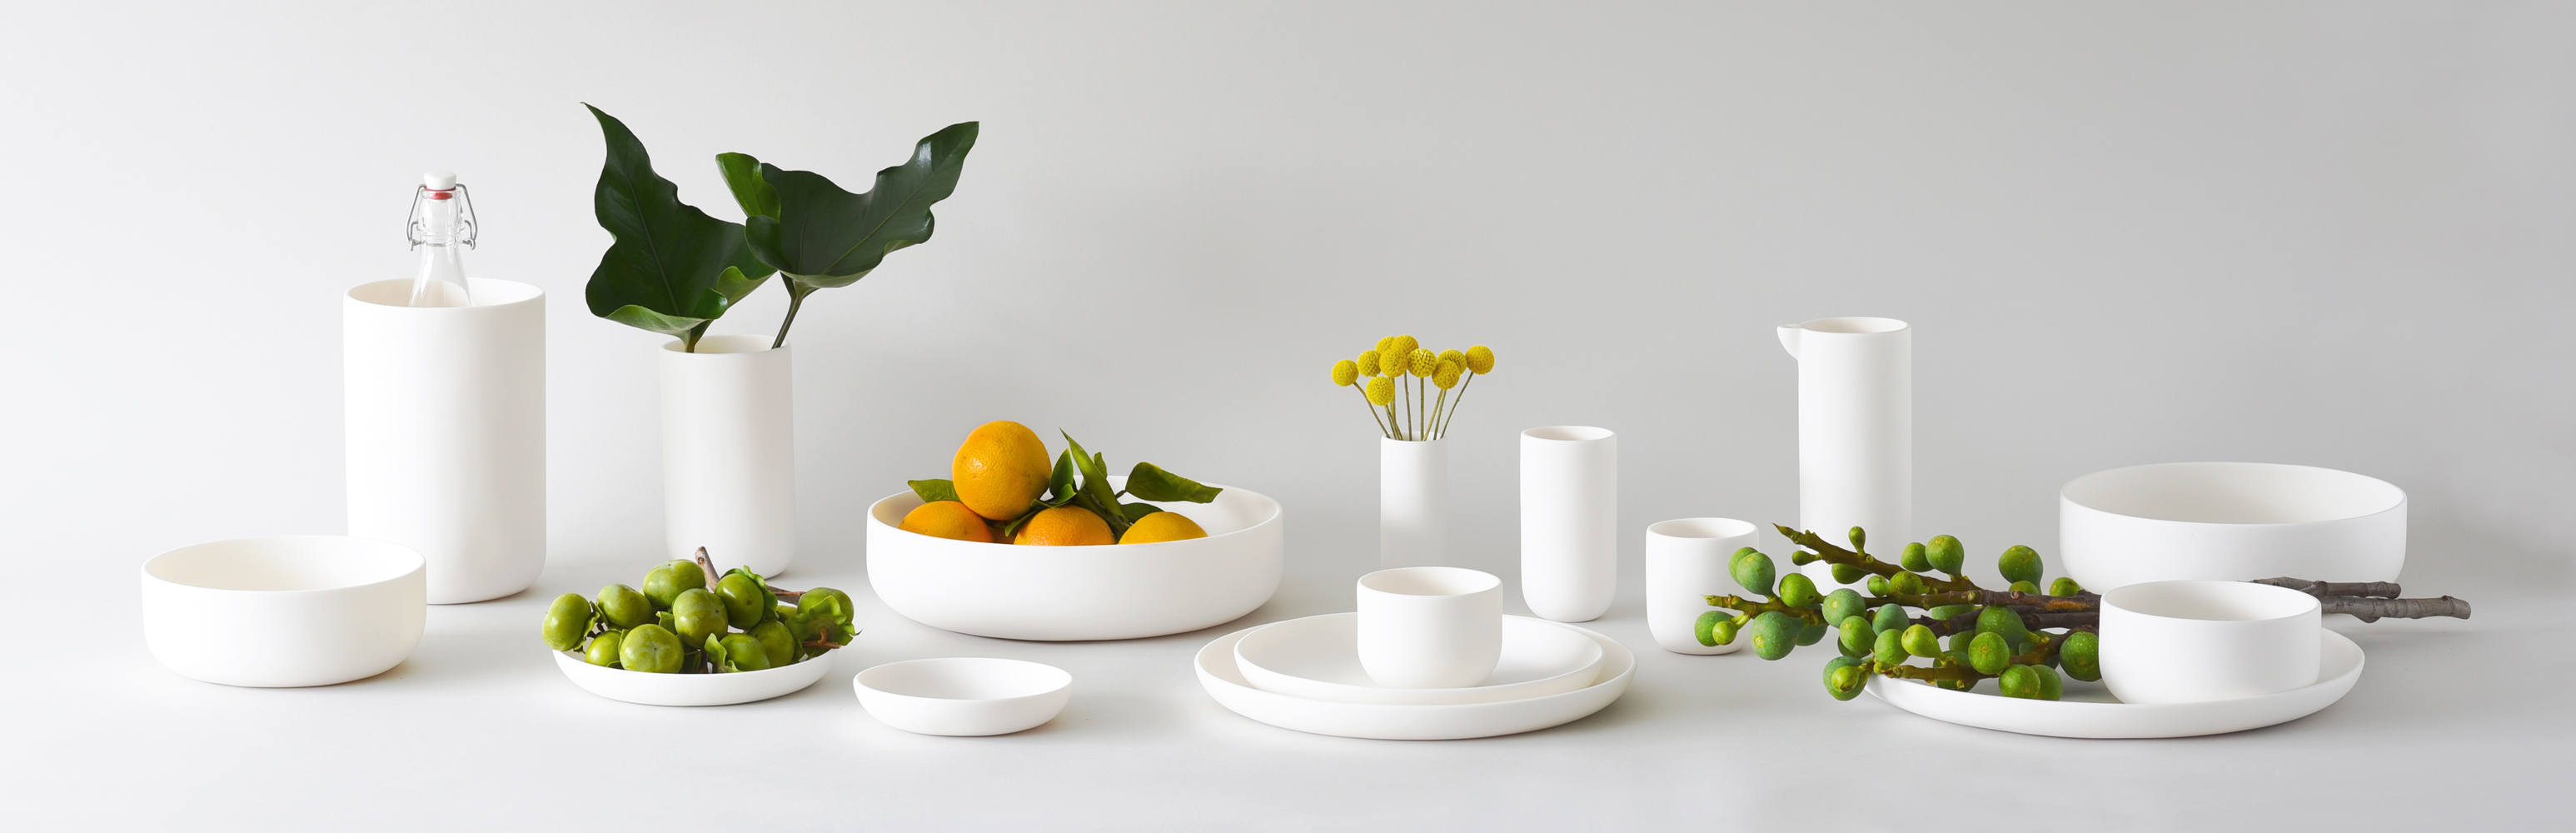 Lookbook_p6-7_-Modern-Tableware-Collecti